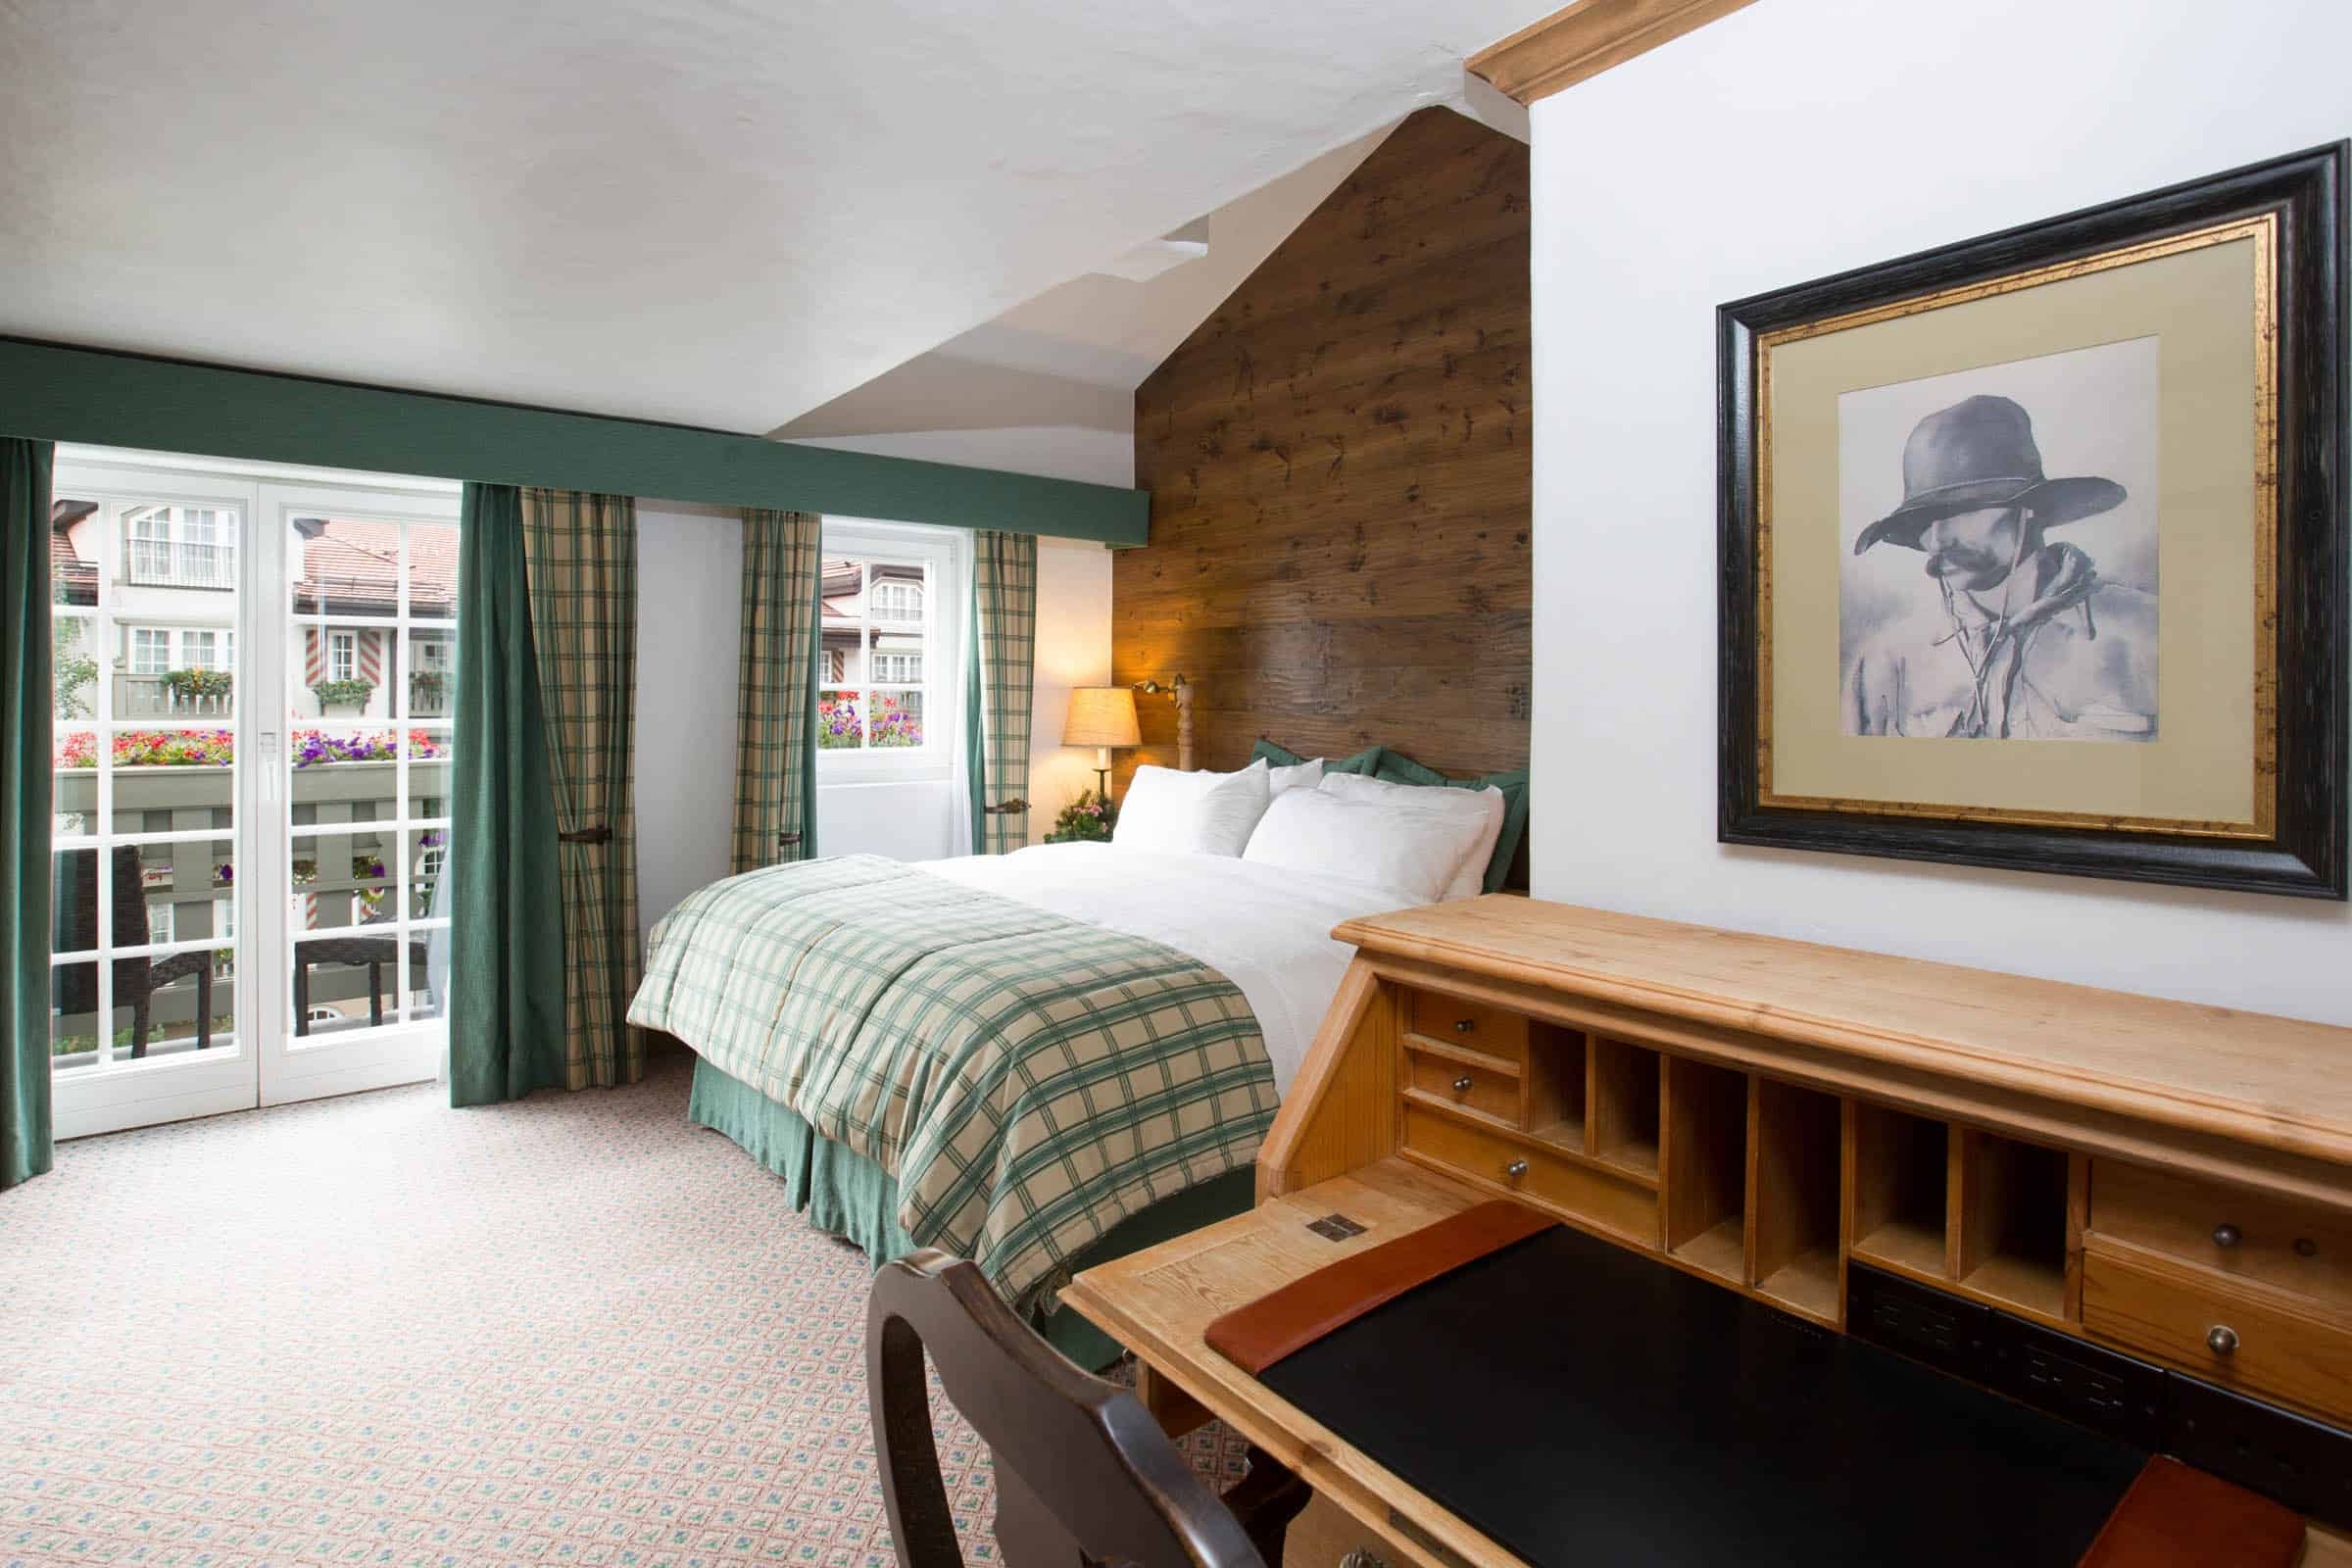 juniper room with bed, doors leading to balcony in background, desk and chair in foreground